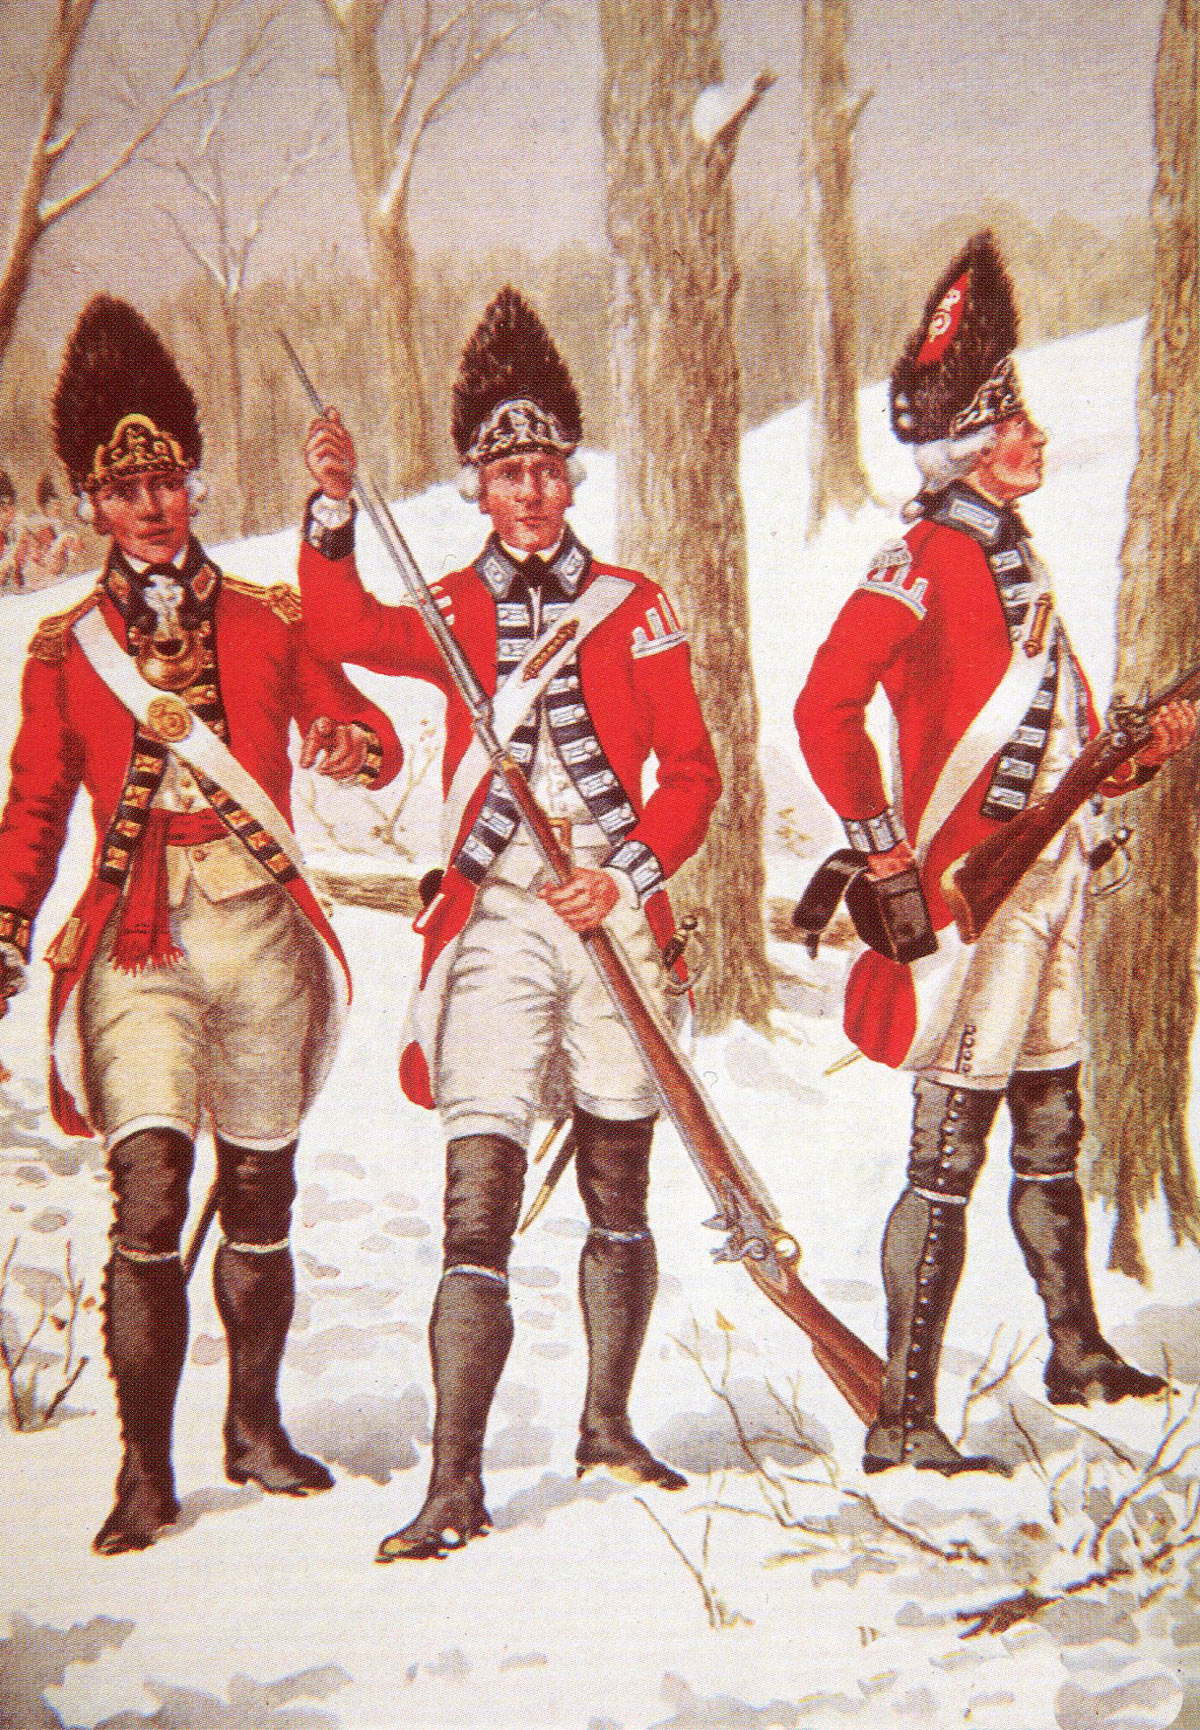 British Officer and Grenadiers: Battle of Princeton on 3rd January 1777 in  the American Revolutionary